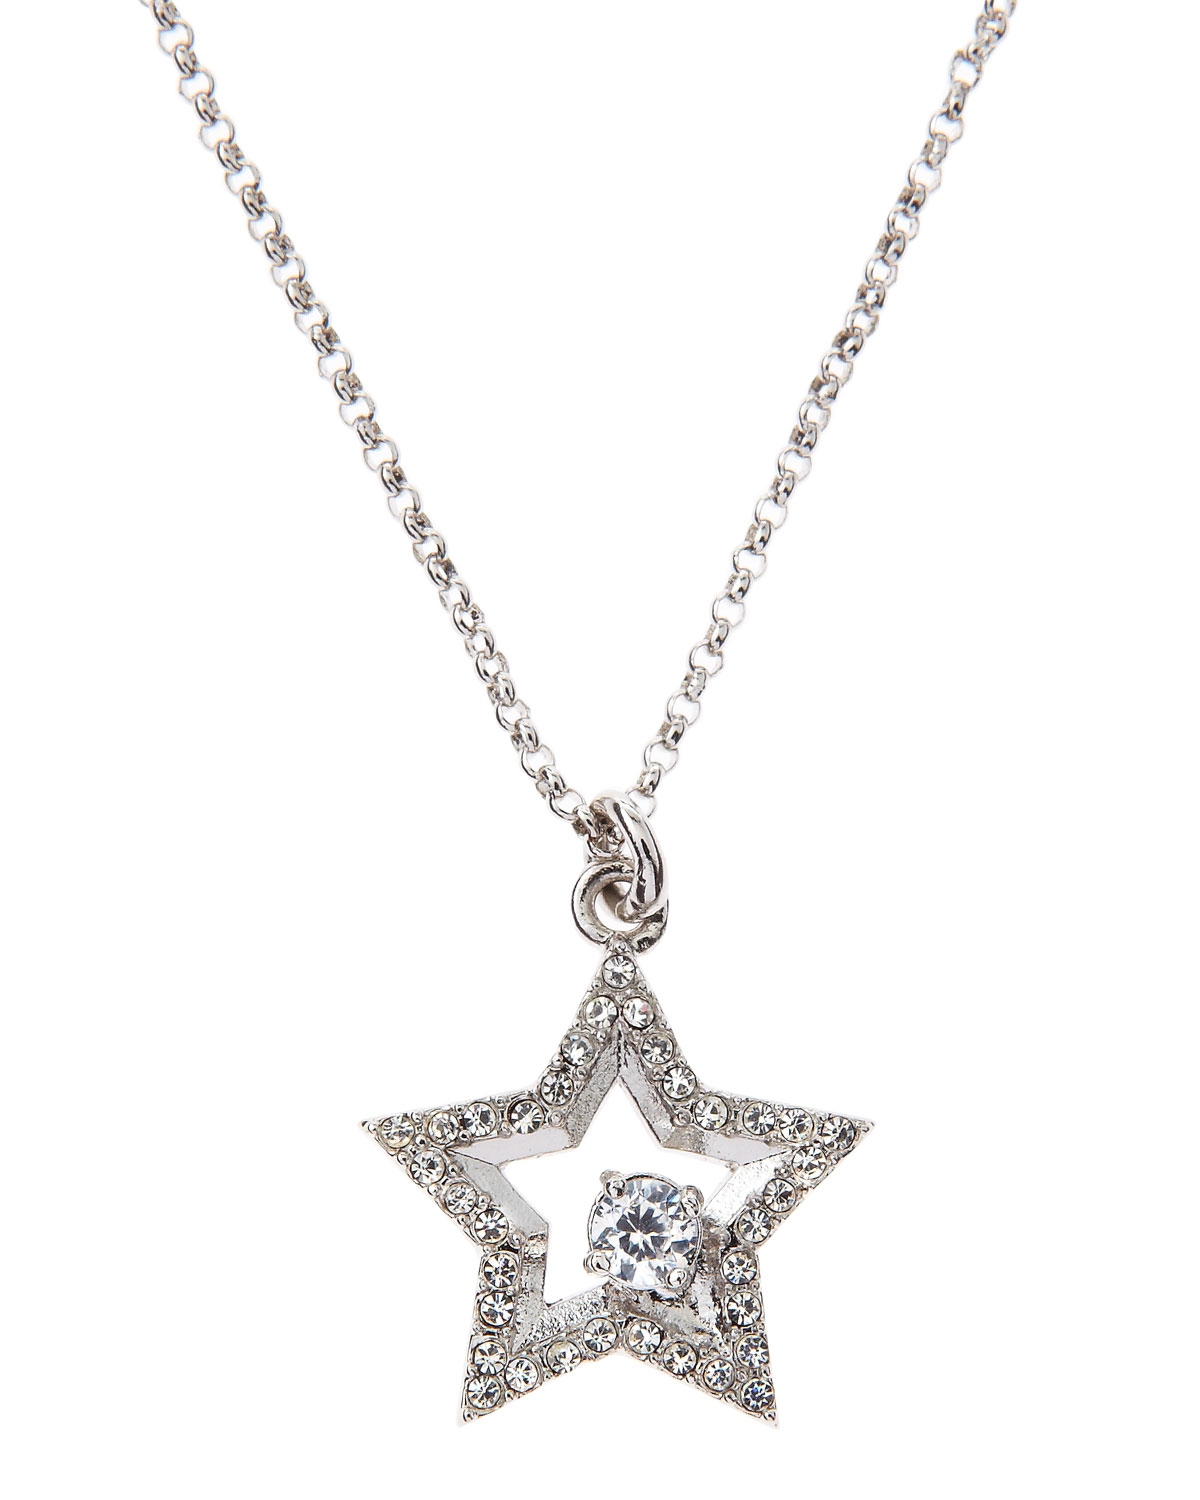 Juicy Couture Pave Star Wish Necklace in Silver (null) | Lyst